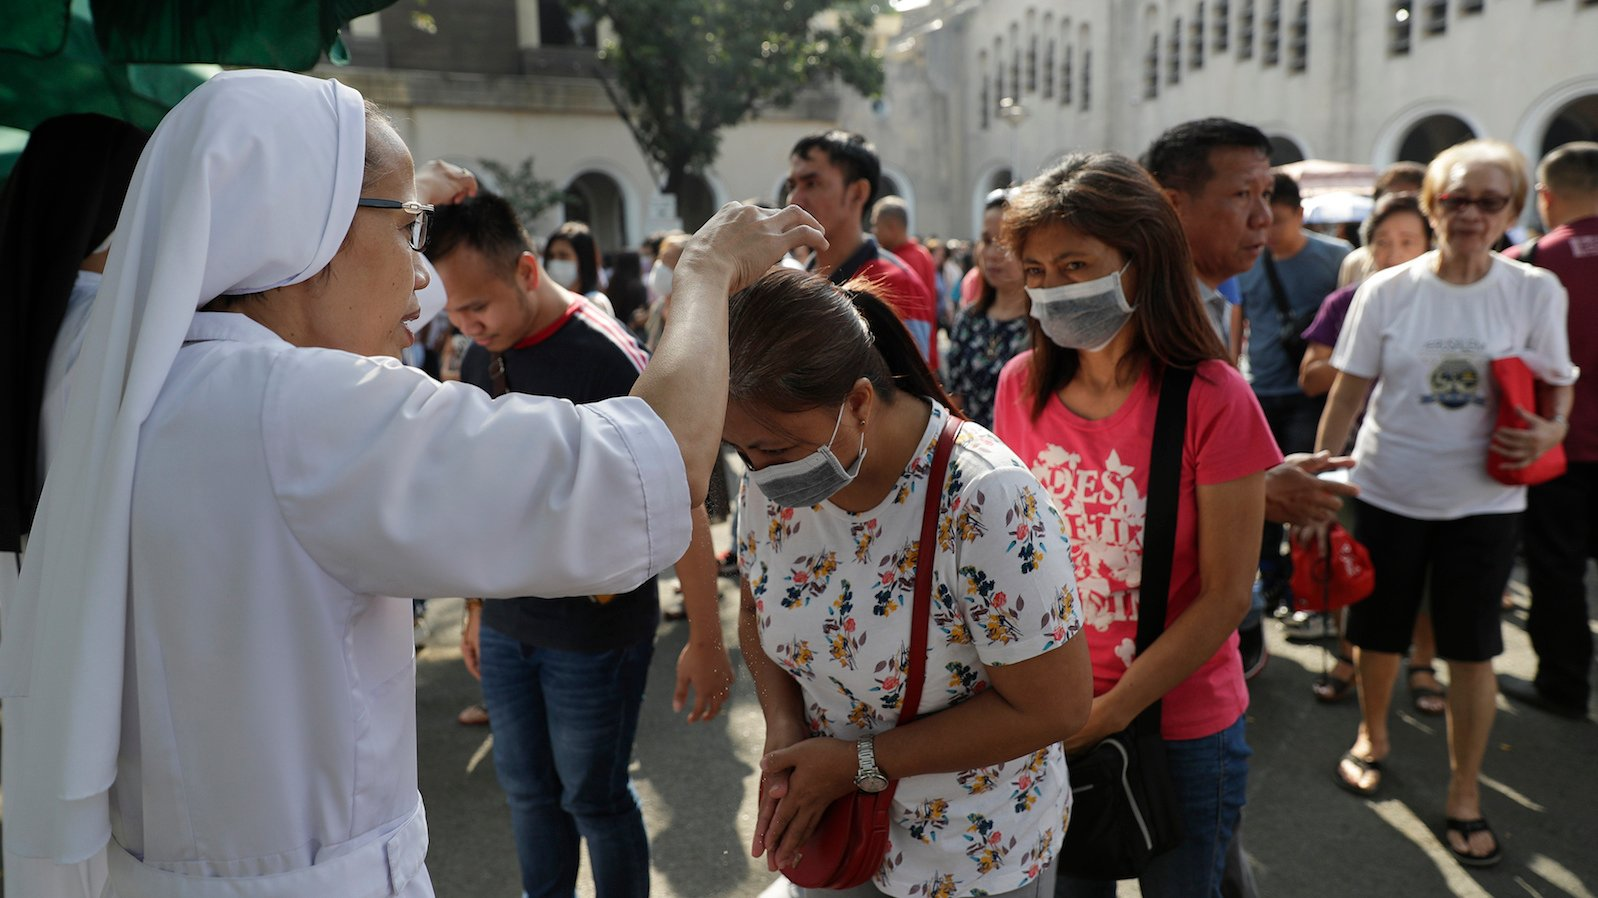 Caution and Cancellations Mark Ash Wednesday in Time of Coonavirus